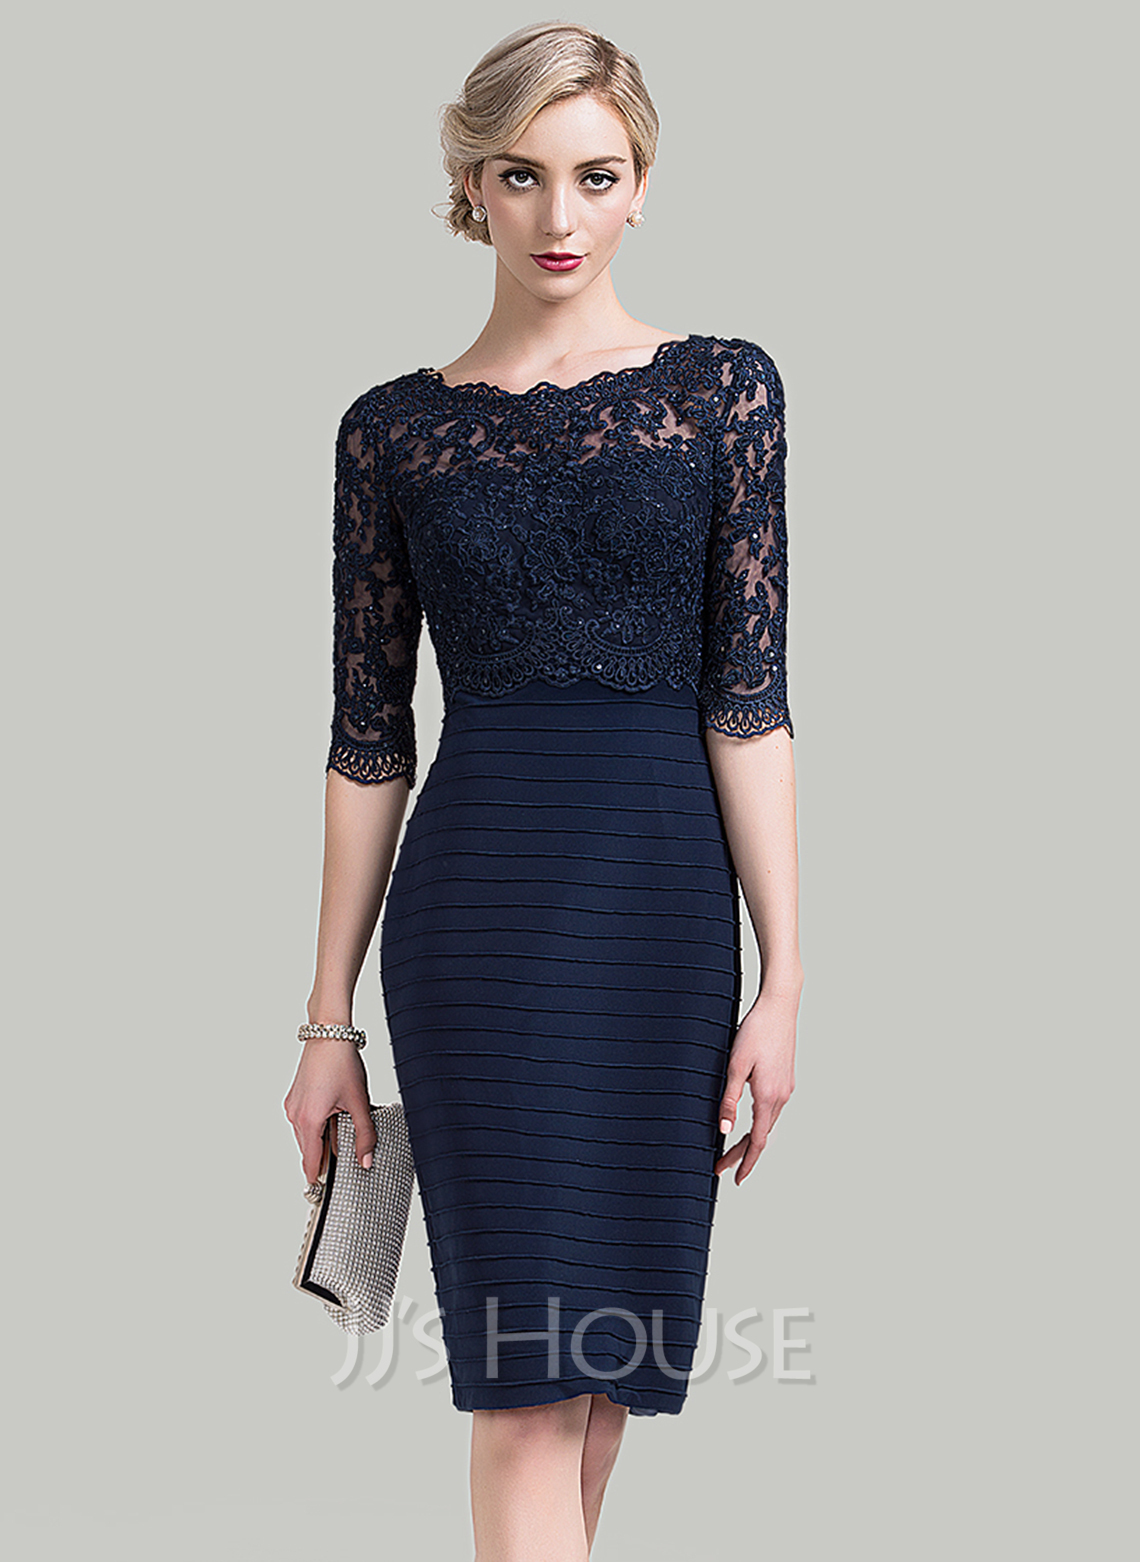 bdff2d610e Sheath Column Scoop Neck Knee-Length Lace Mother of the Bride Dress With  Sequins. Loading zoom